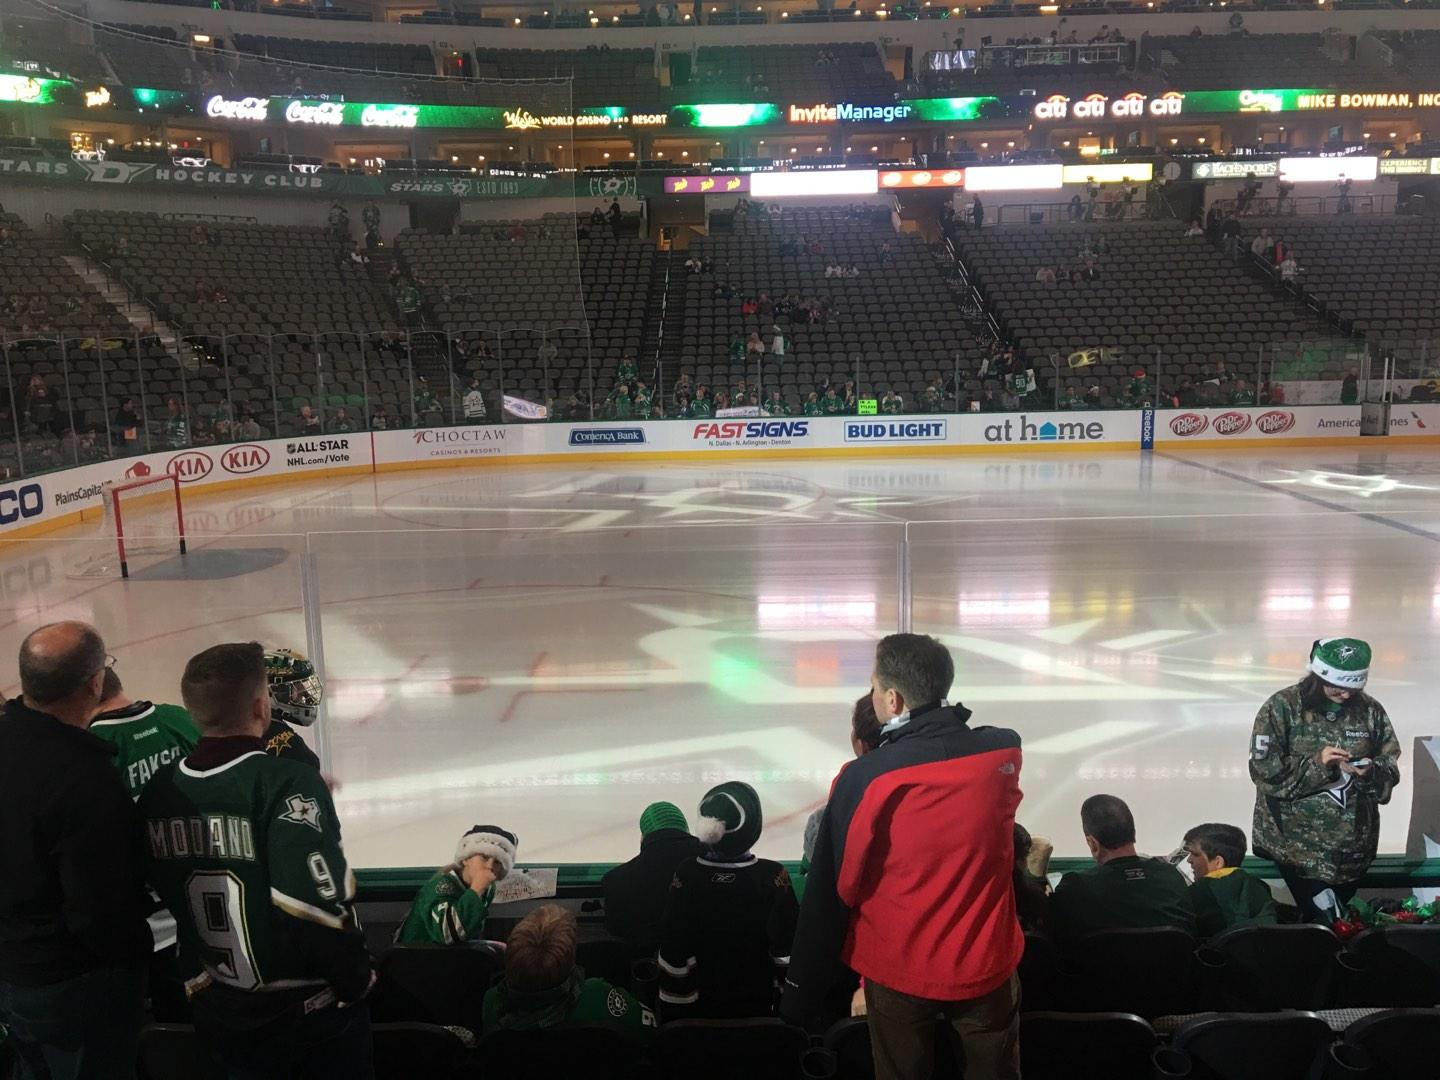 American Airlines Center Section 120 Row F Seat 15-16